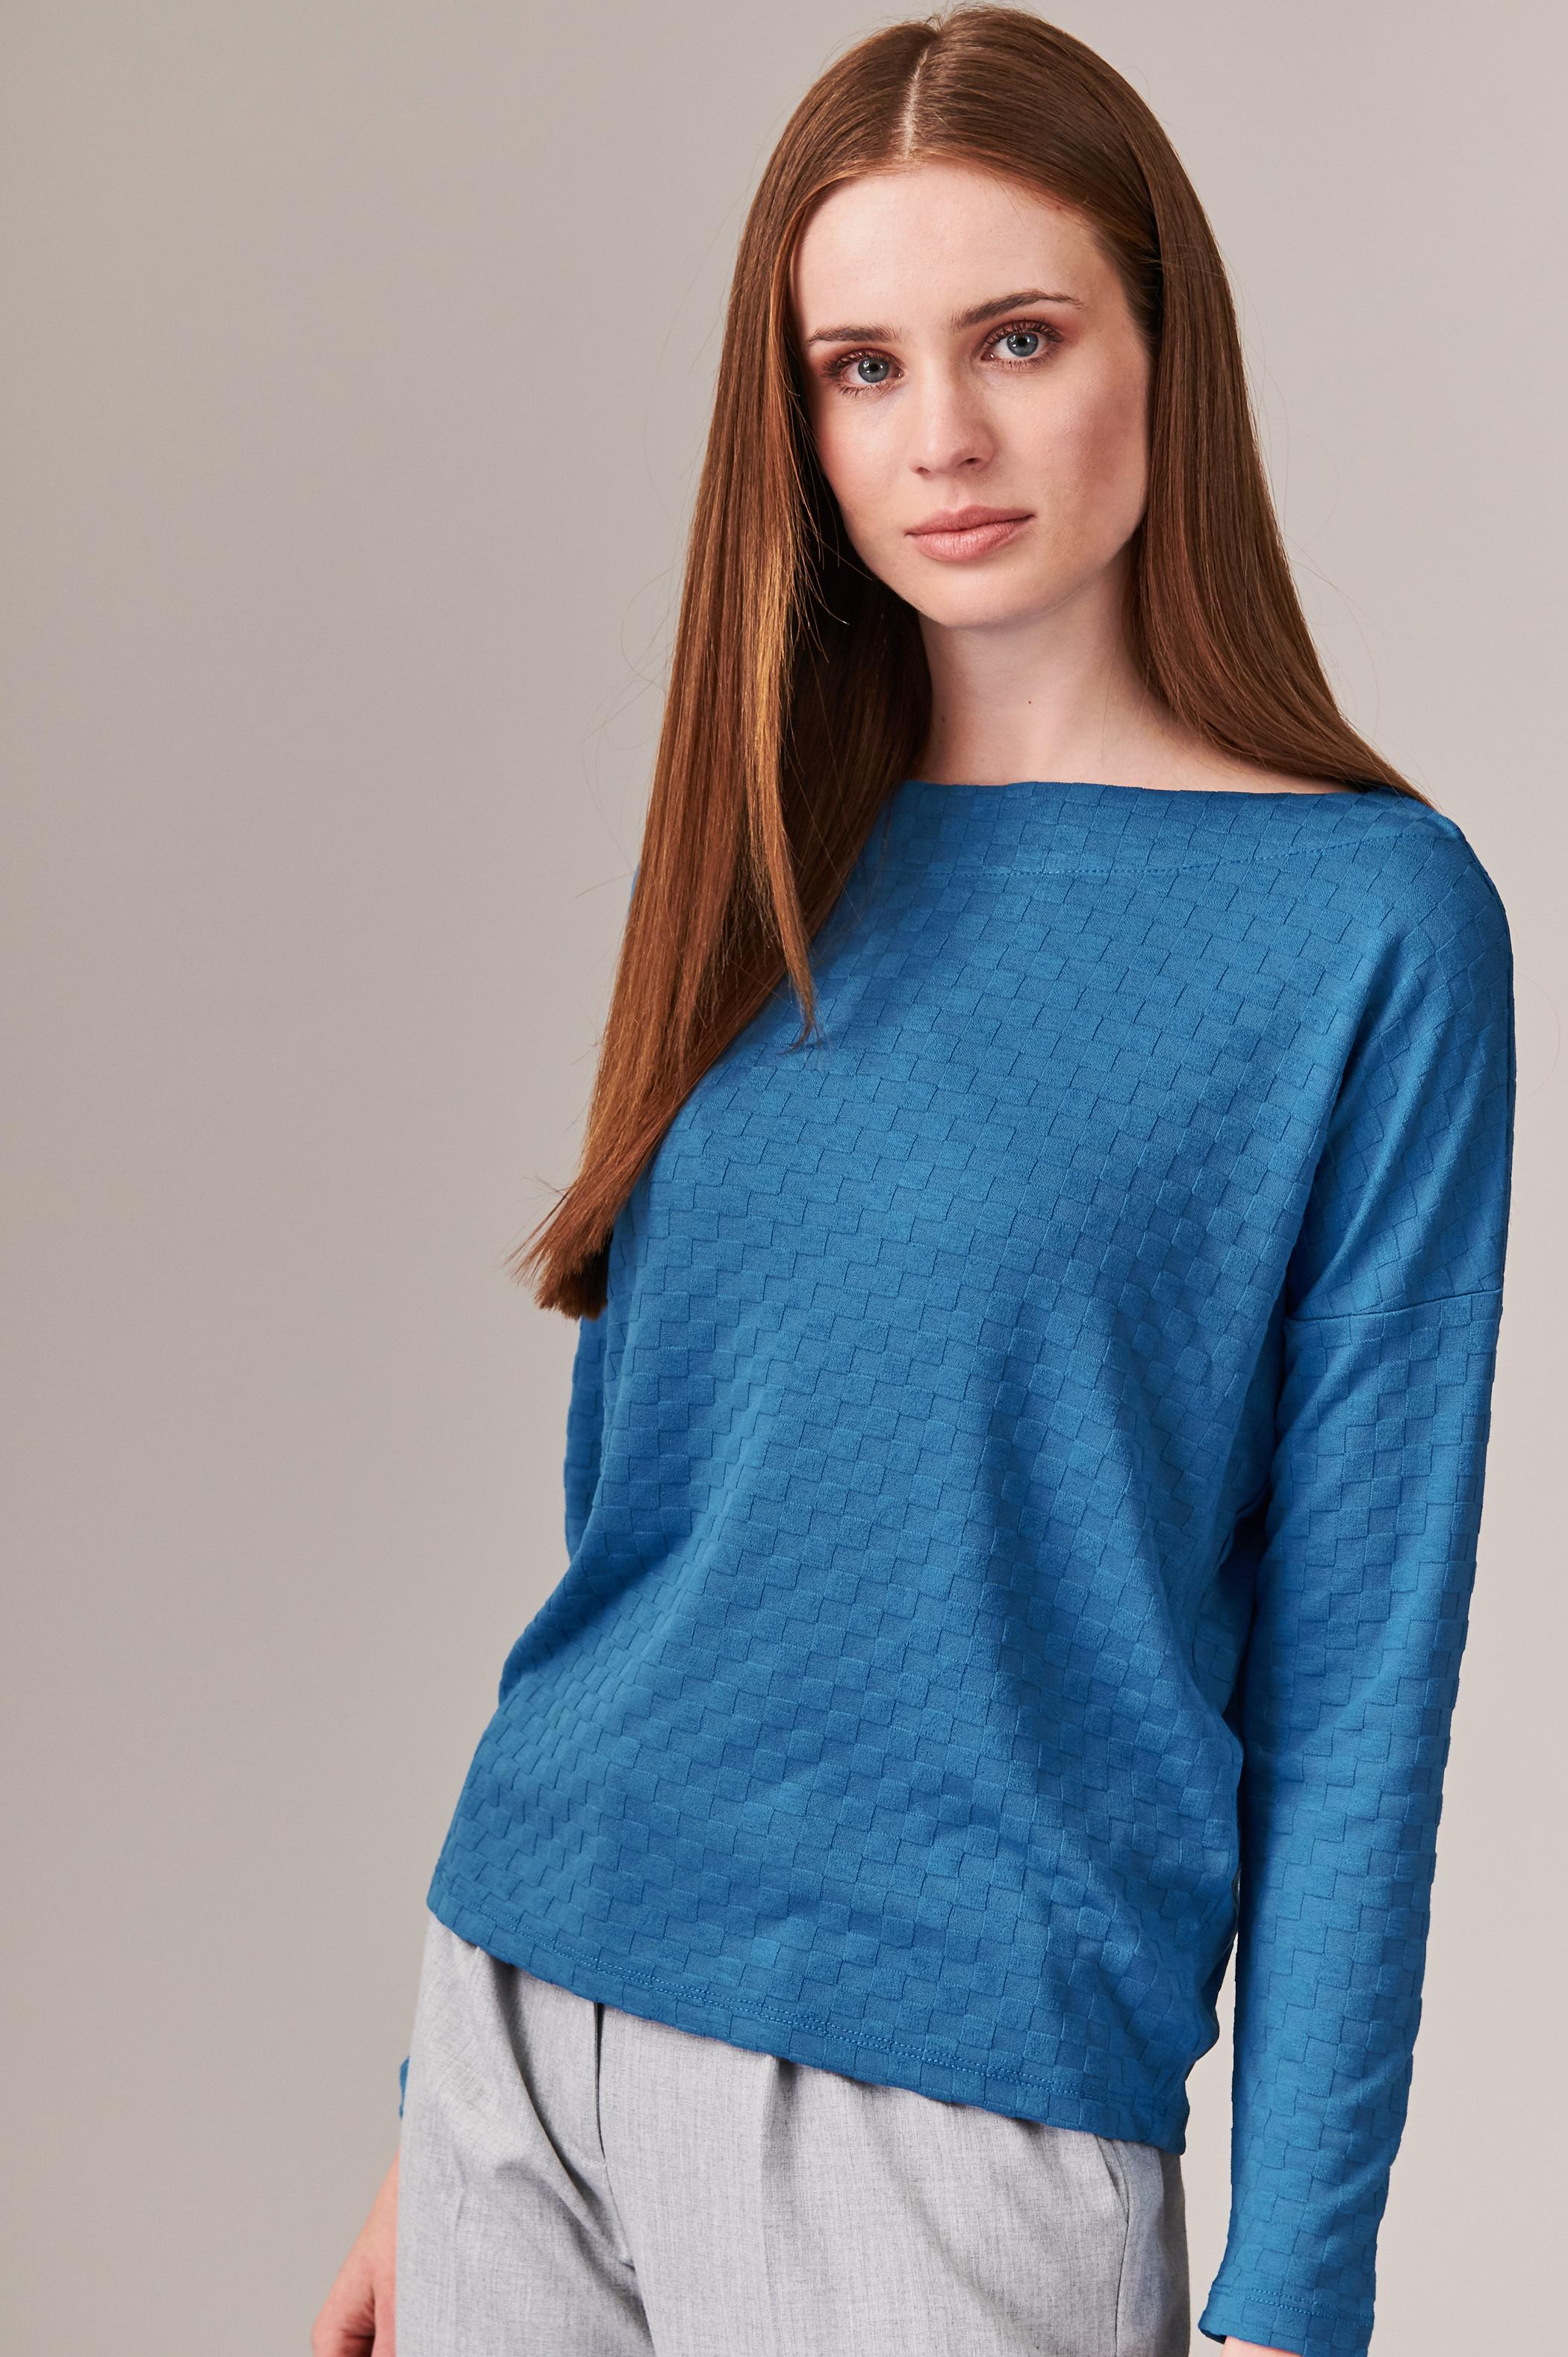 LADIES' 3D KNITTED BLOUSE AMERI 3